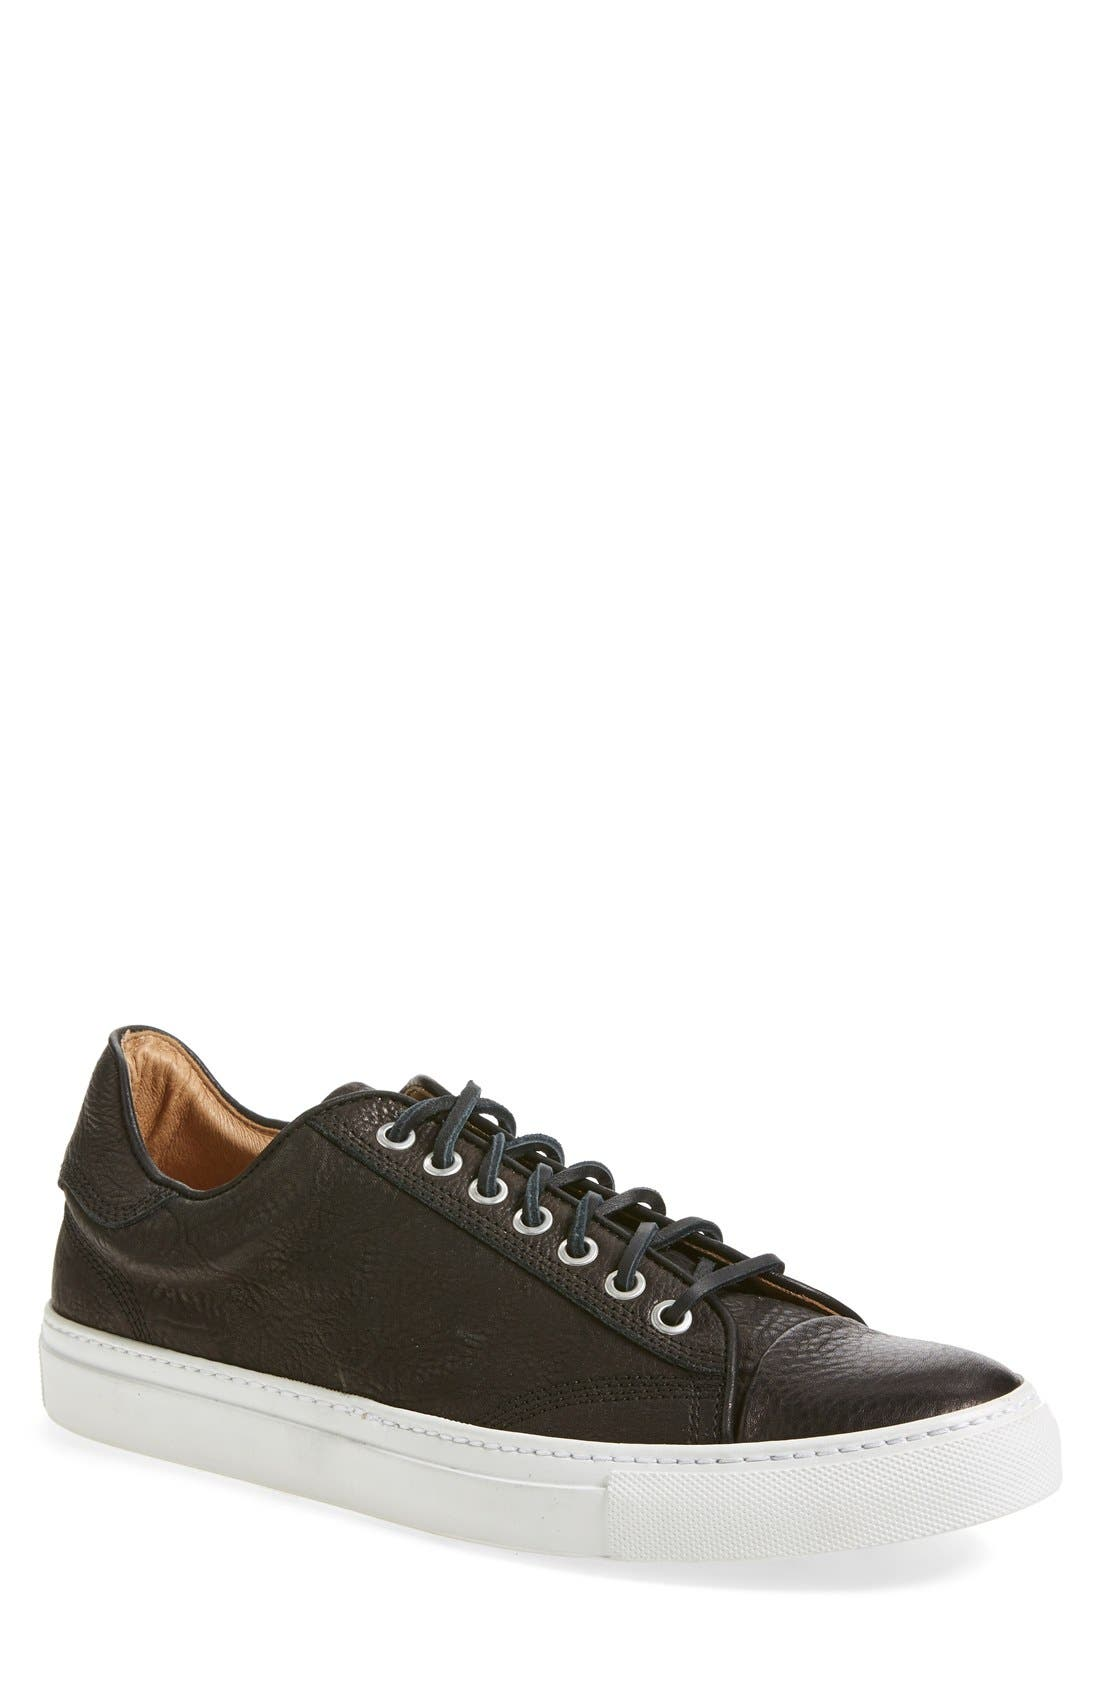 wings + horns Low Top Sneaker (Men)